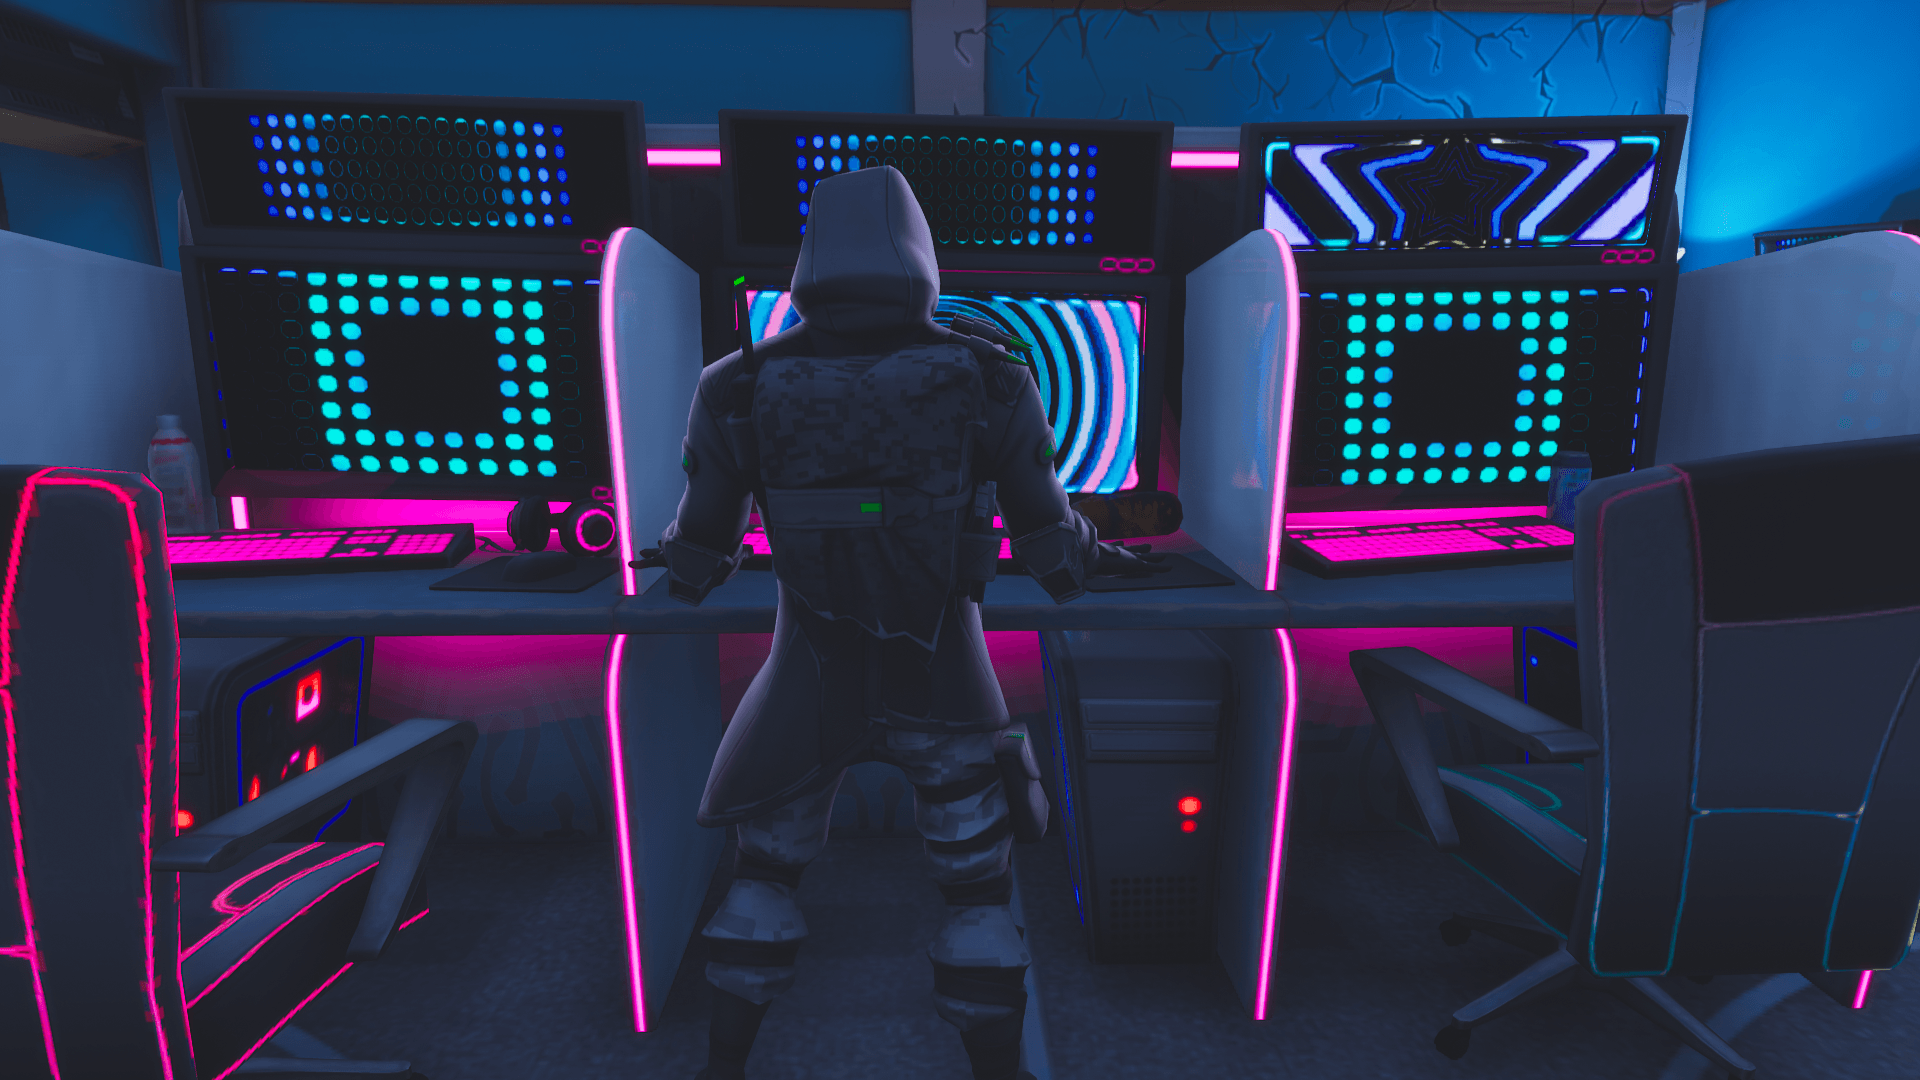 4k Resolution Neon Wallpaper Hd Cool Neon Fortnite Wallpaper